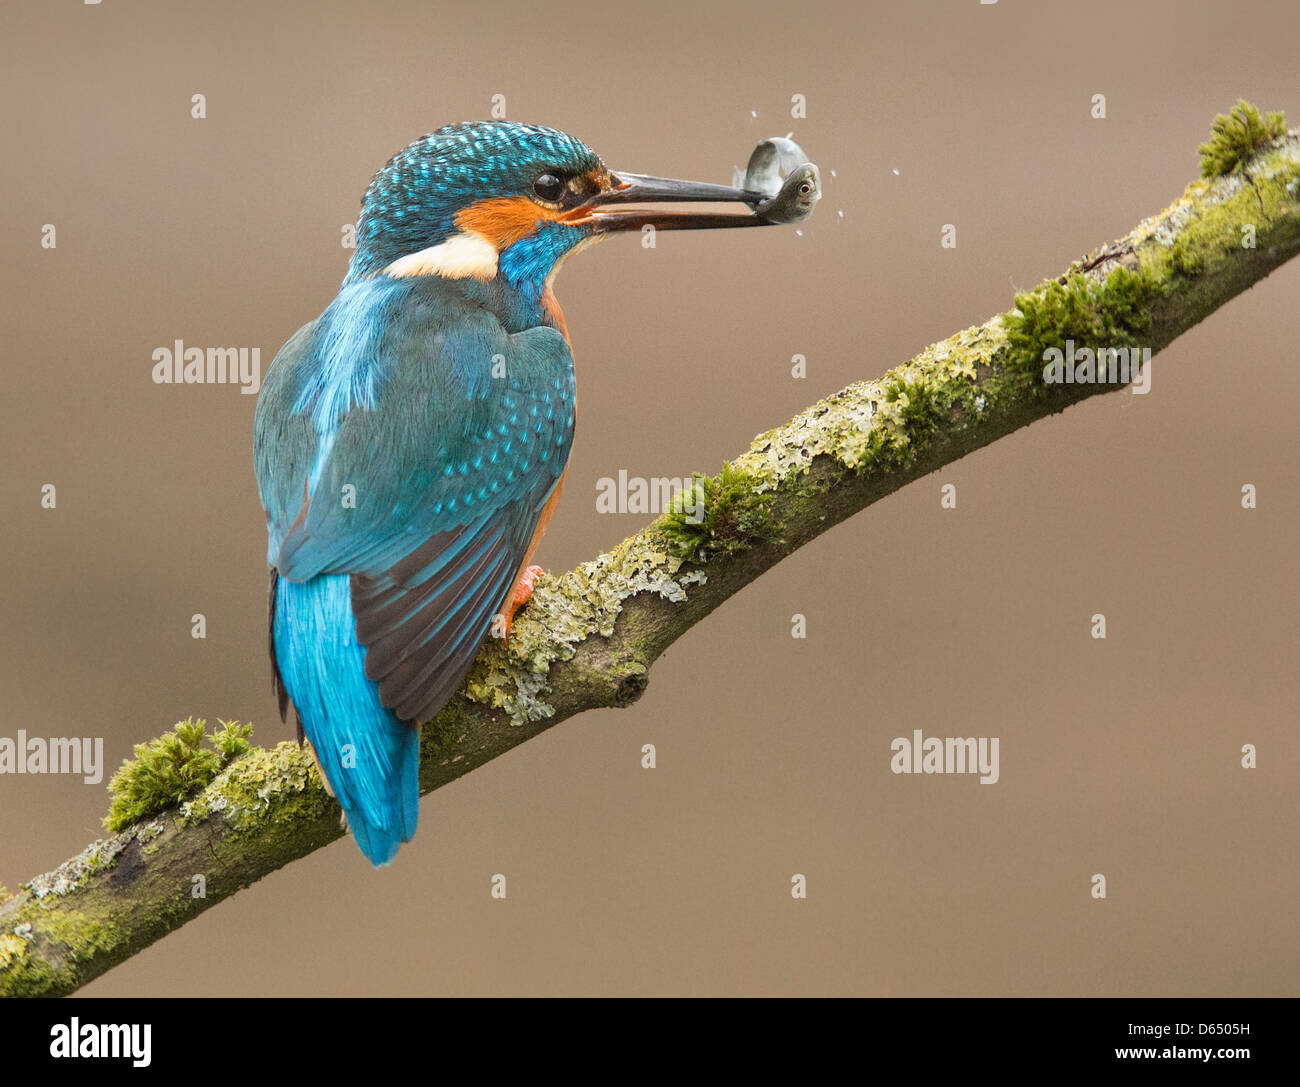 Kingfisher with fish - Stock Image